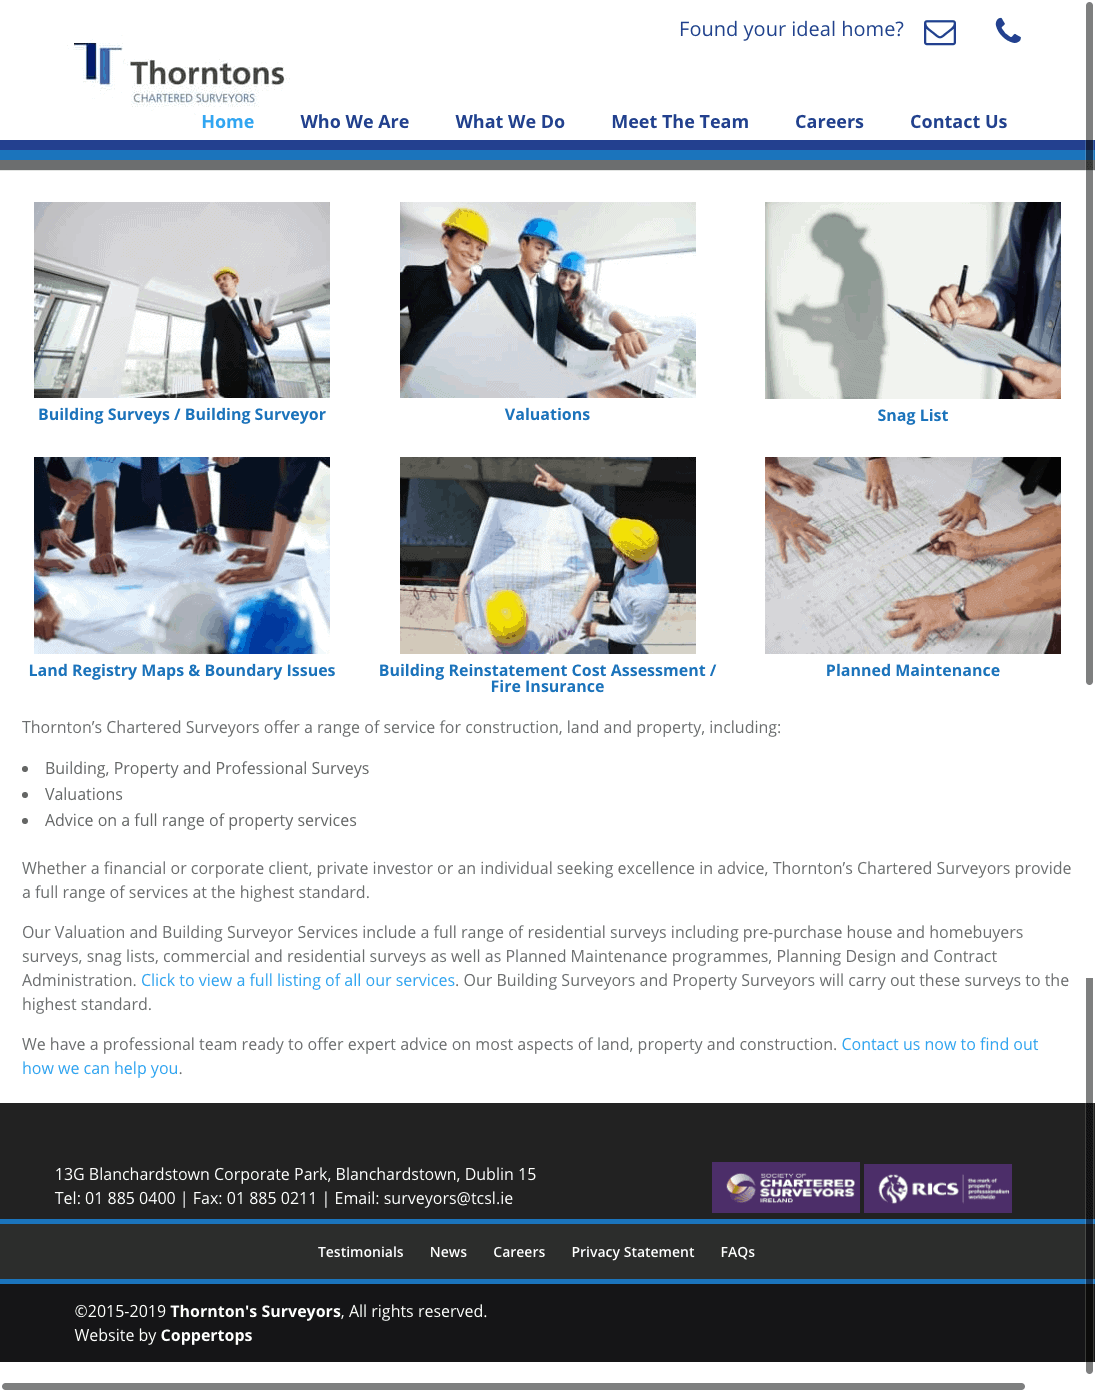 Thorntons Chartered Surveyors web design